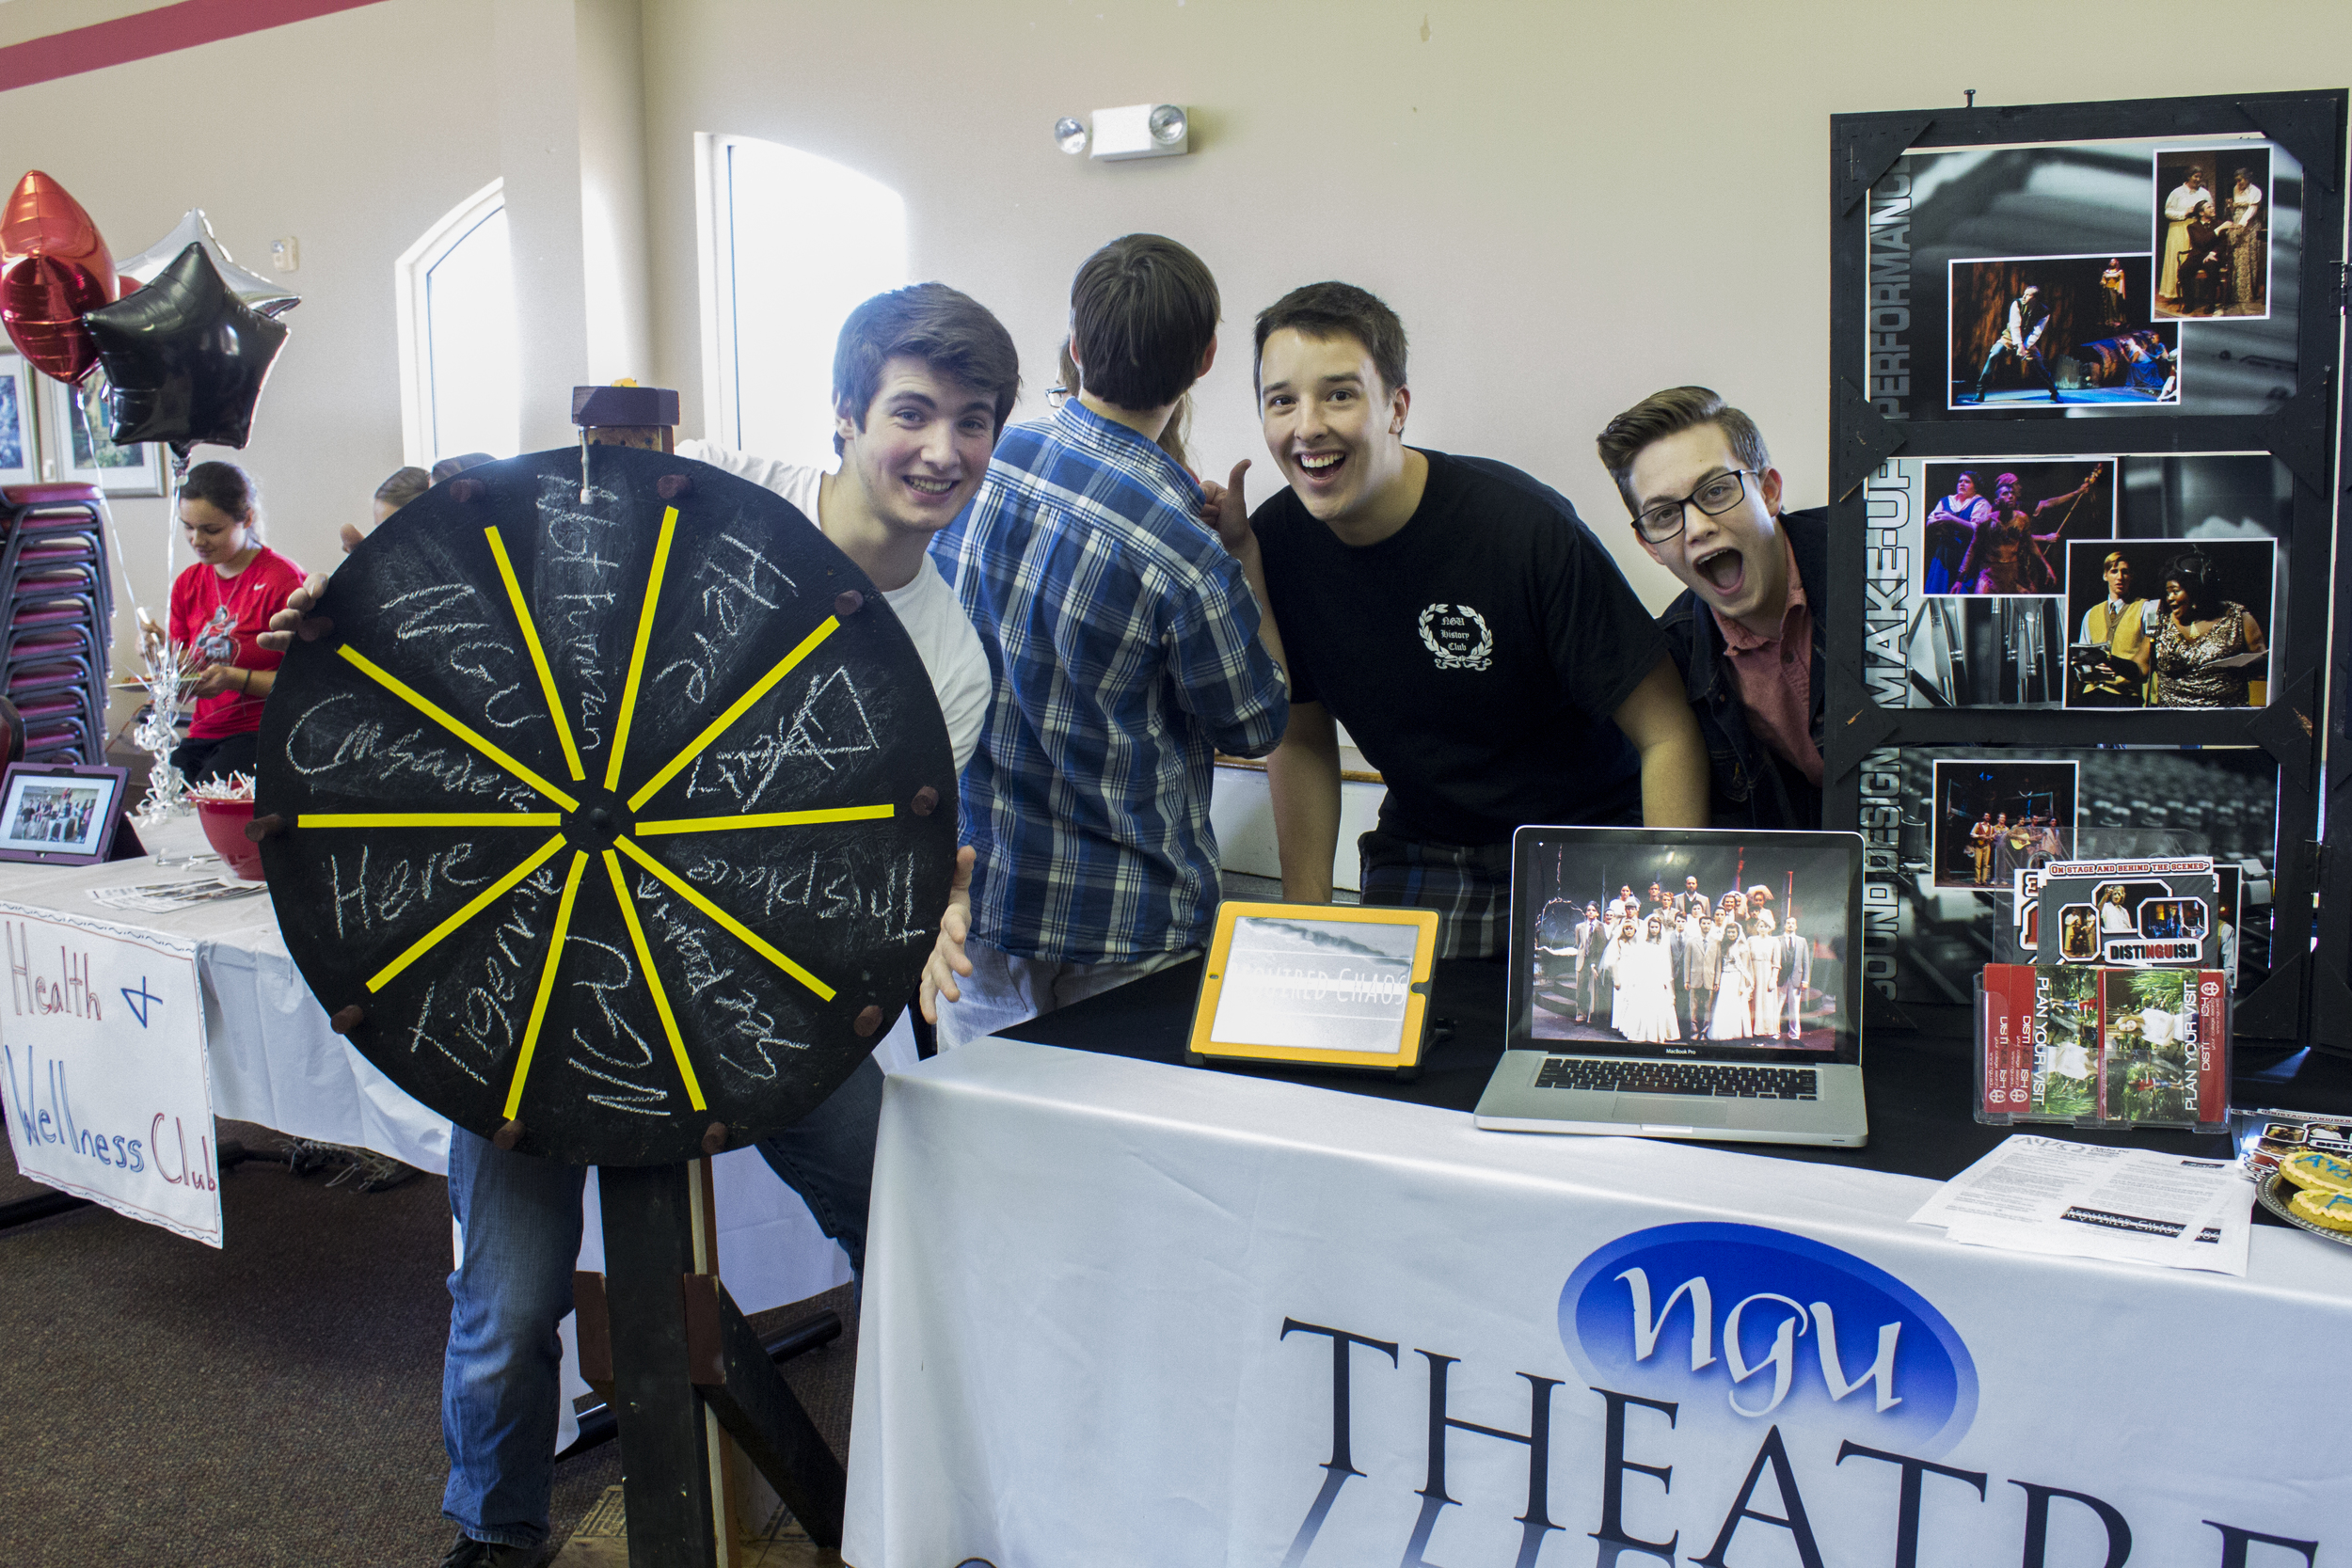 The NGU theatre crew show their well knownenthusiasm for those who pass by.